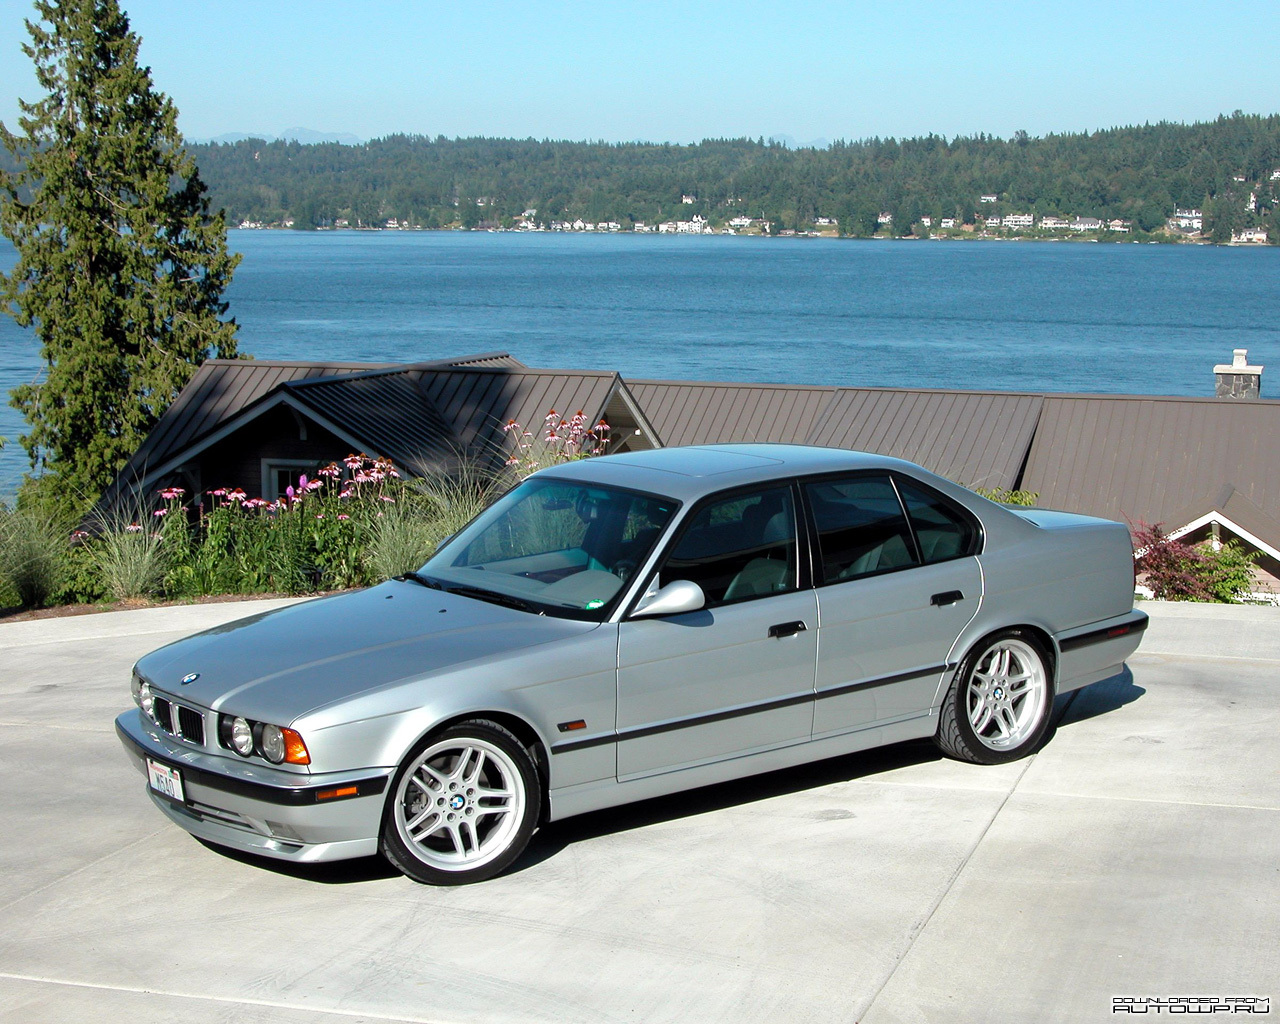 BMW M5 E34 picture # 64211 | BMW photo gallery | CarsBase.com